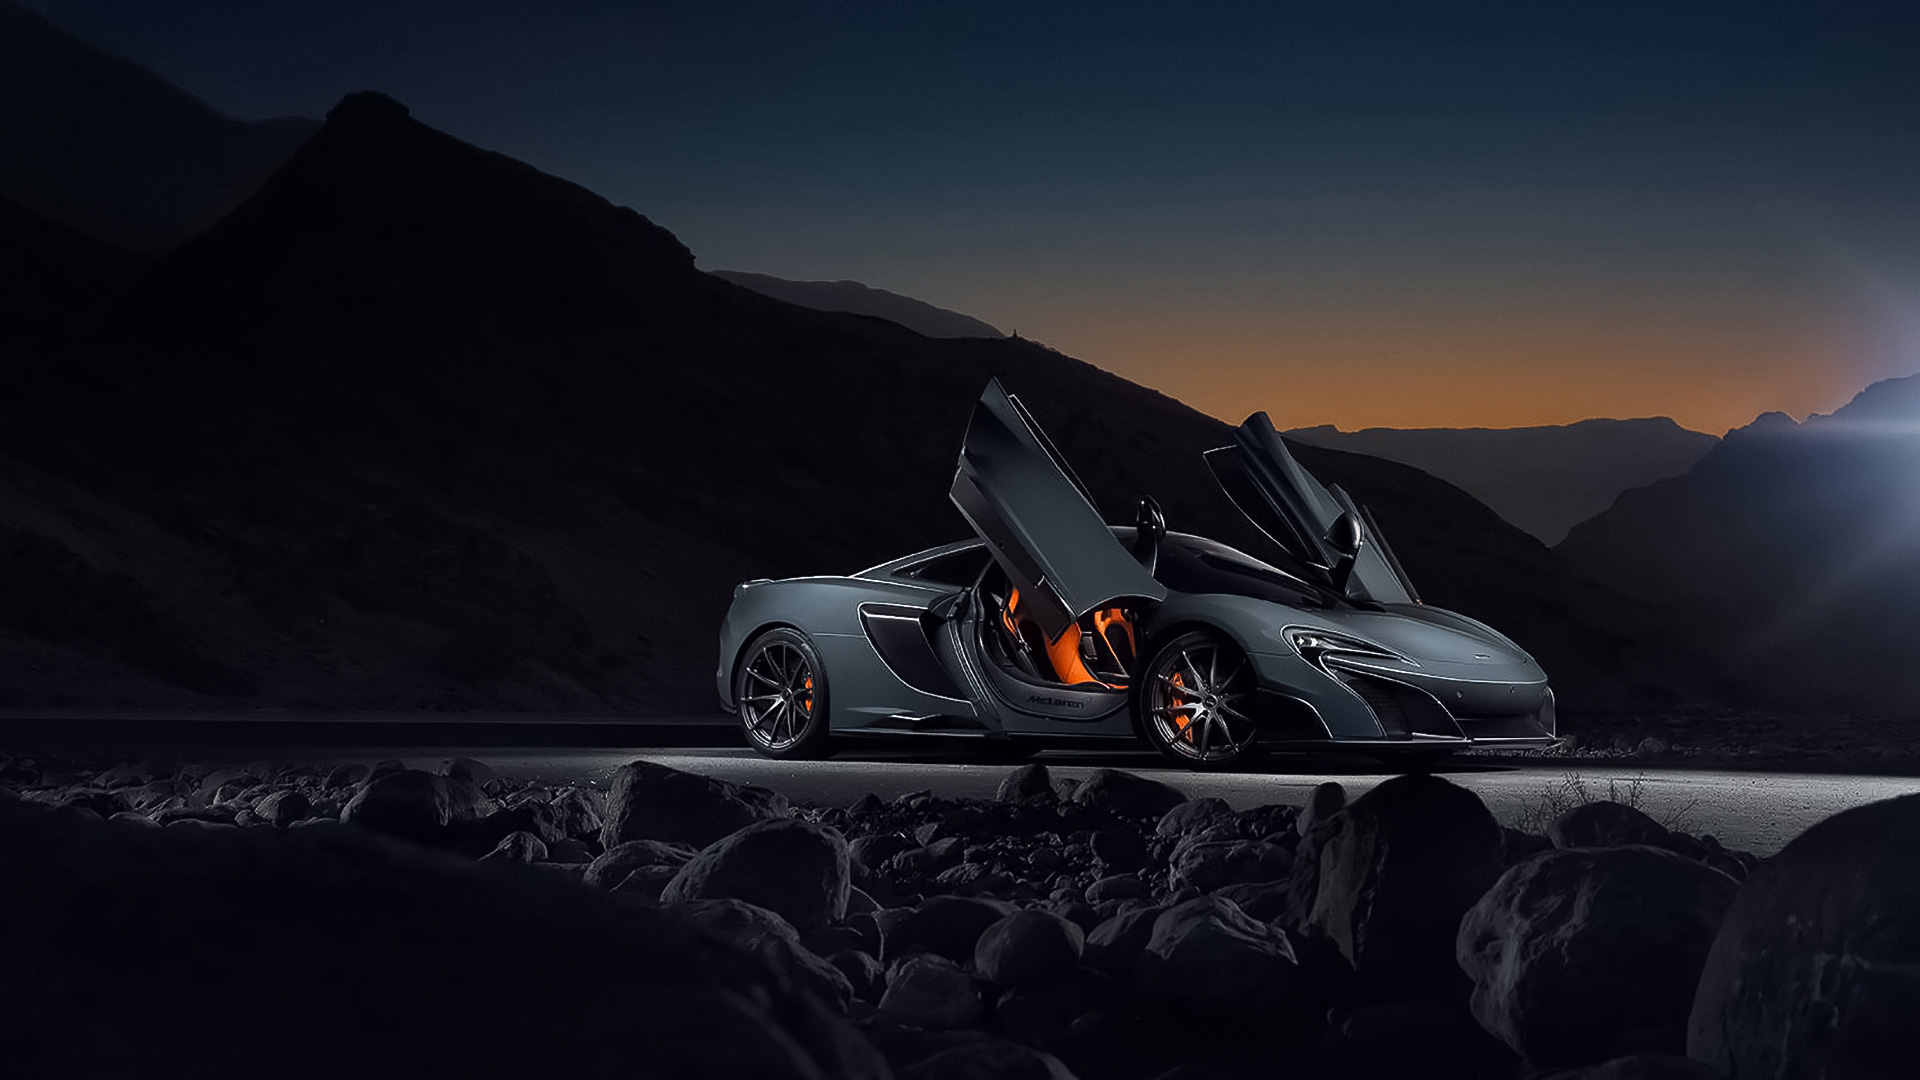 Supercar Hd Wallpaper: McLaren 675LT Supercar Wallpaper